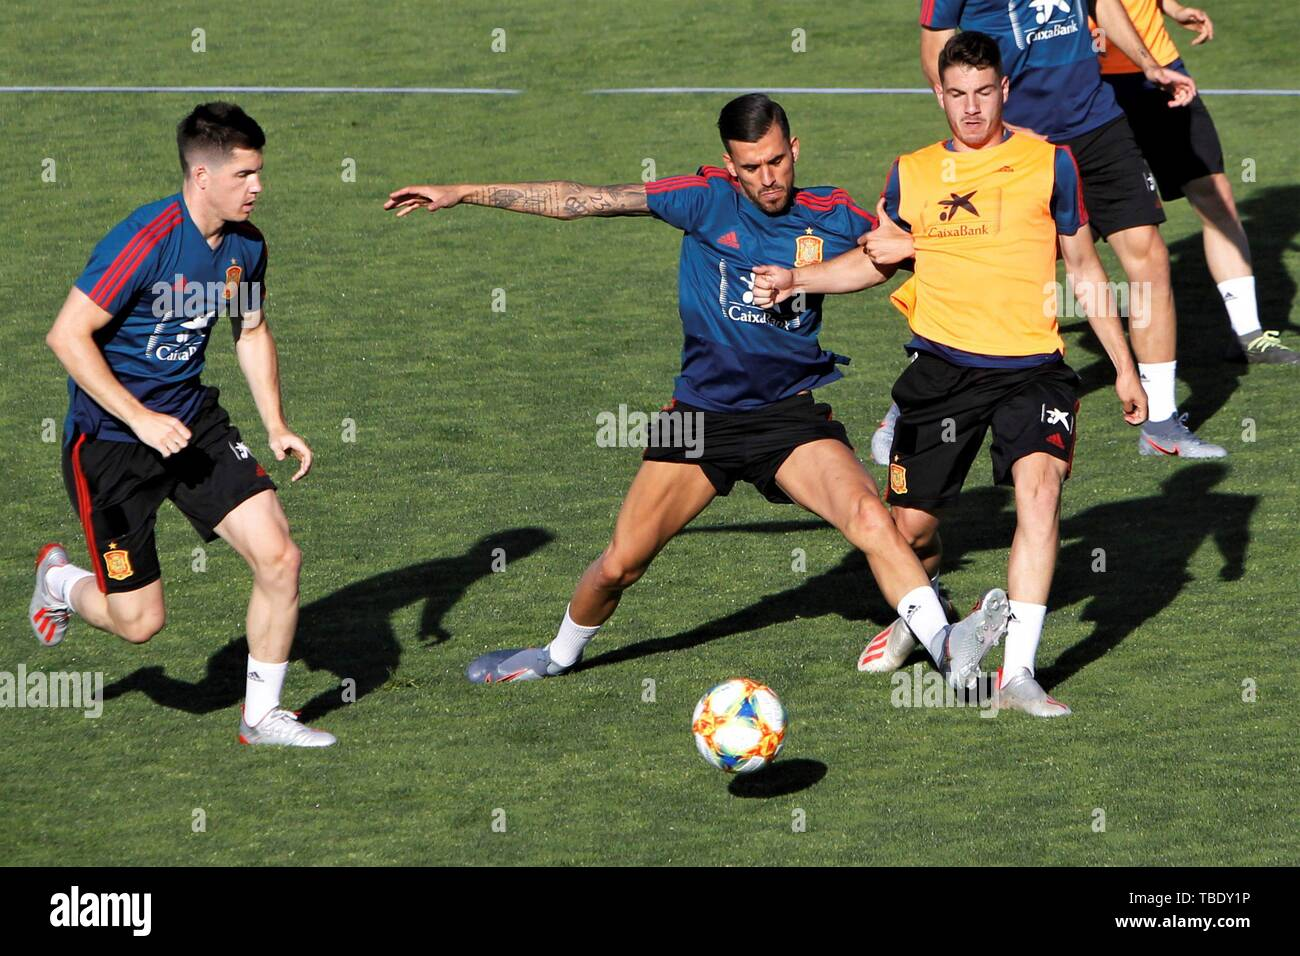 Spain's under21 national team players participate in a training session at Las Rozas Soccer City in Madrid, Spain, 31 May 2019. Spain is preparing ahead 2019 UEFA European Under-21 Championship, that will run from 16 to 30 June 2019. EFE/ Paolo Aguilar Stock Photo